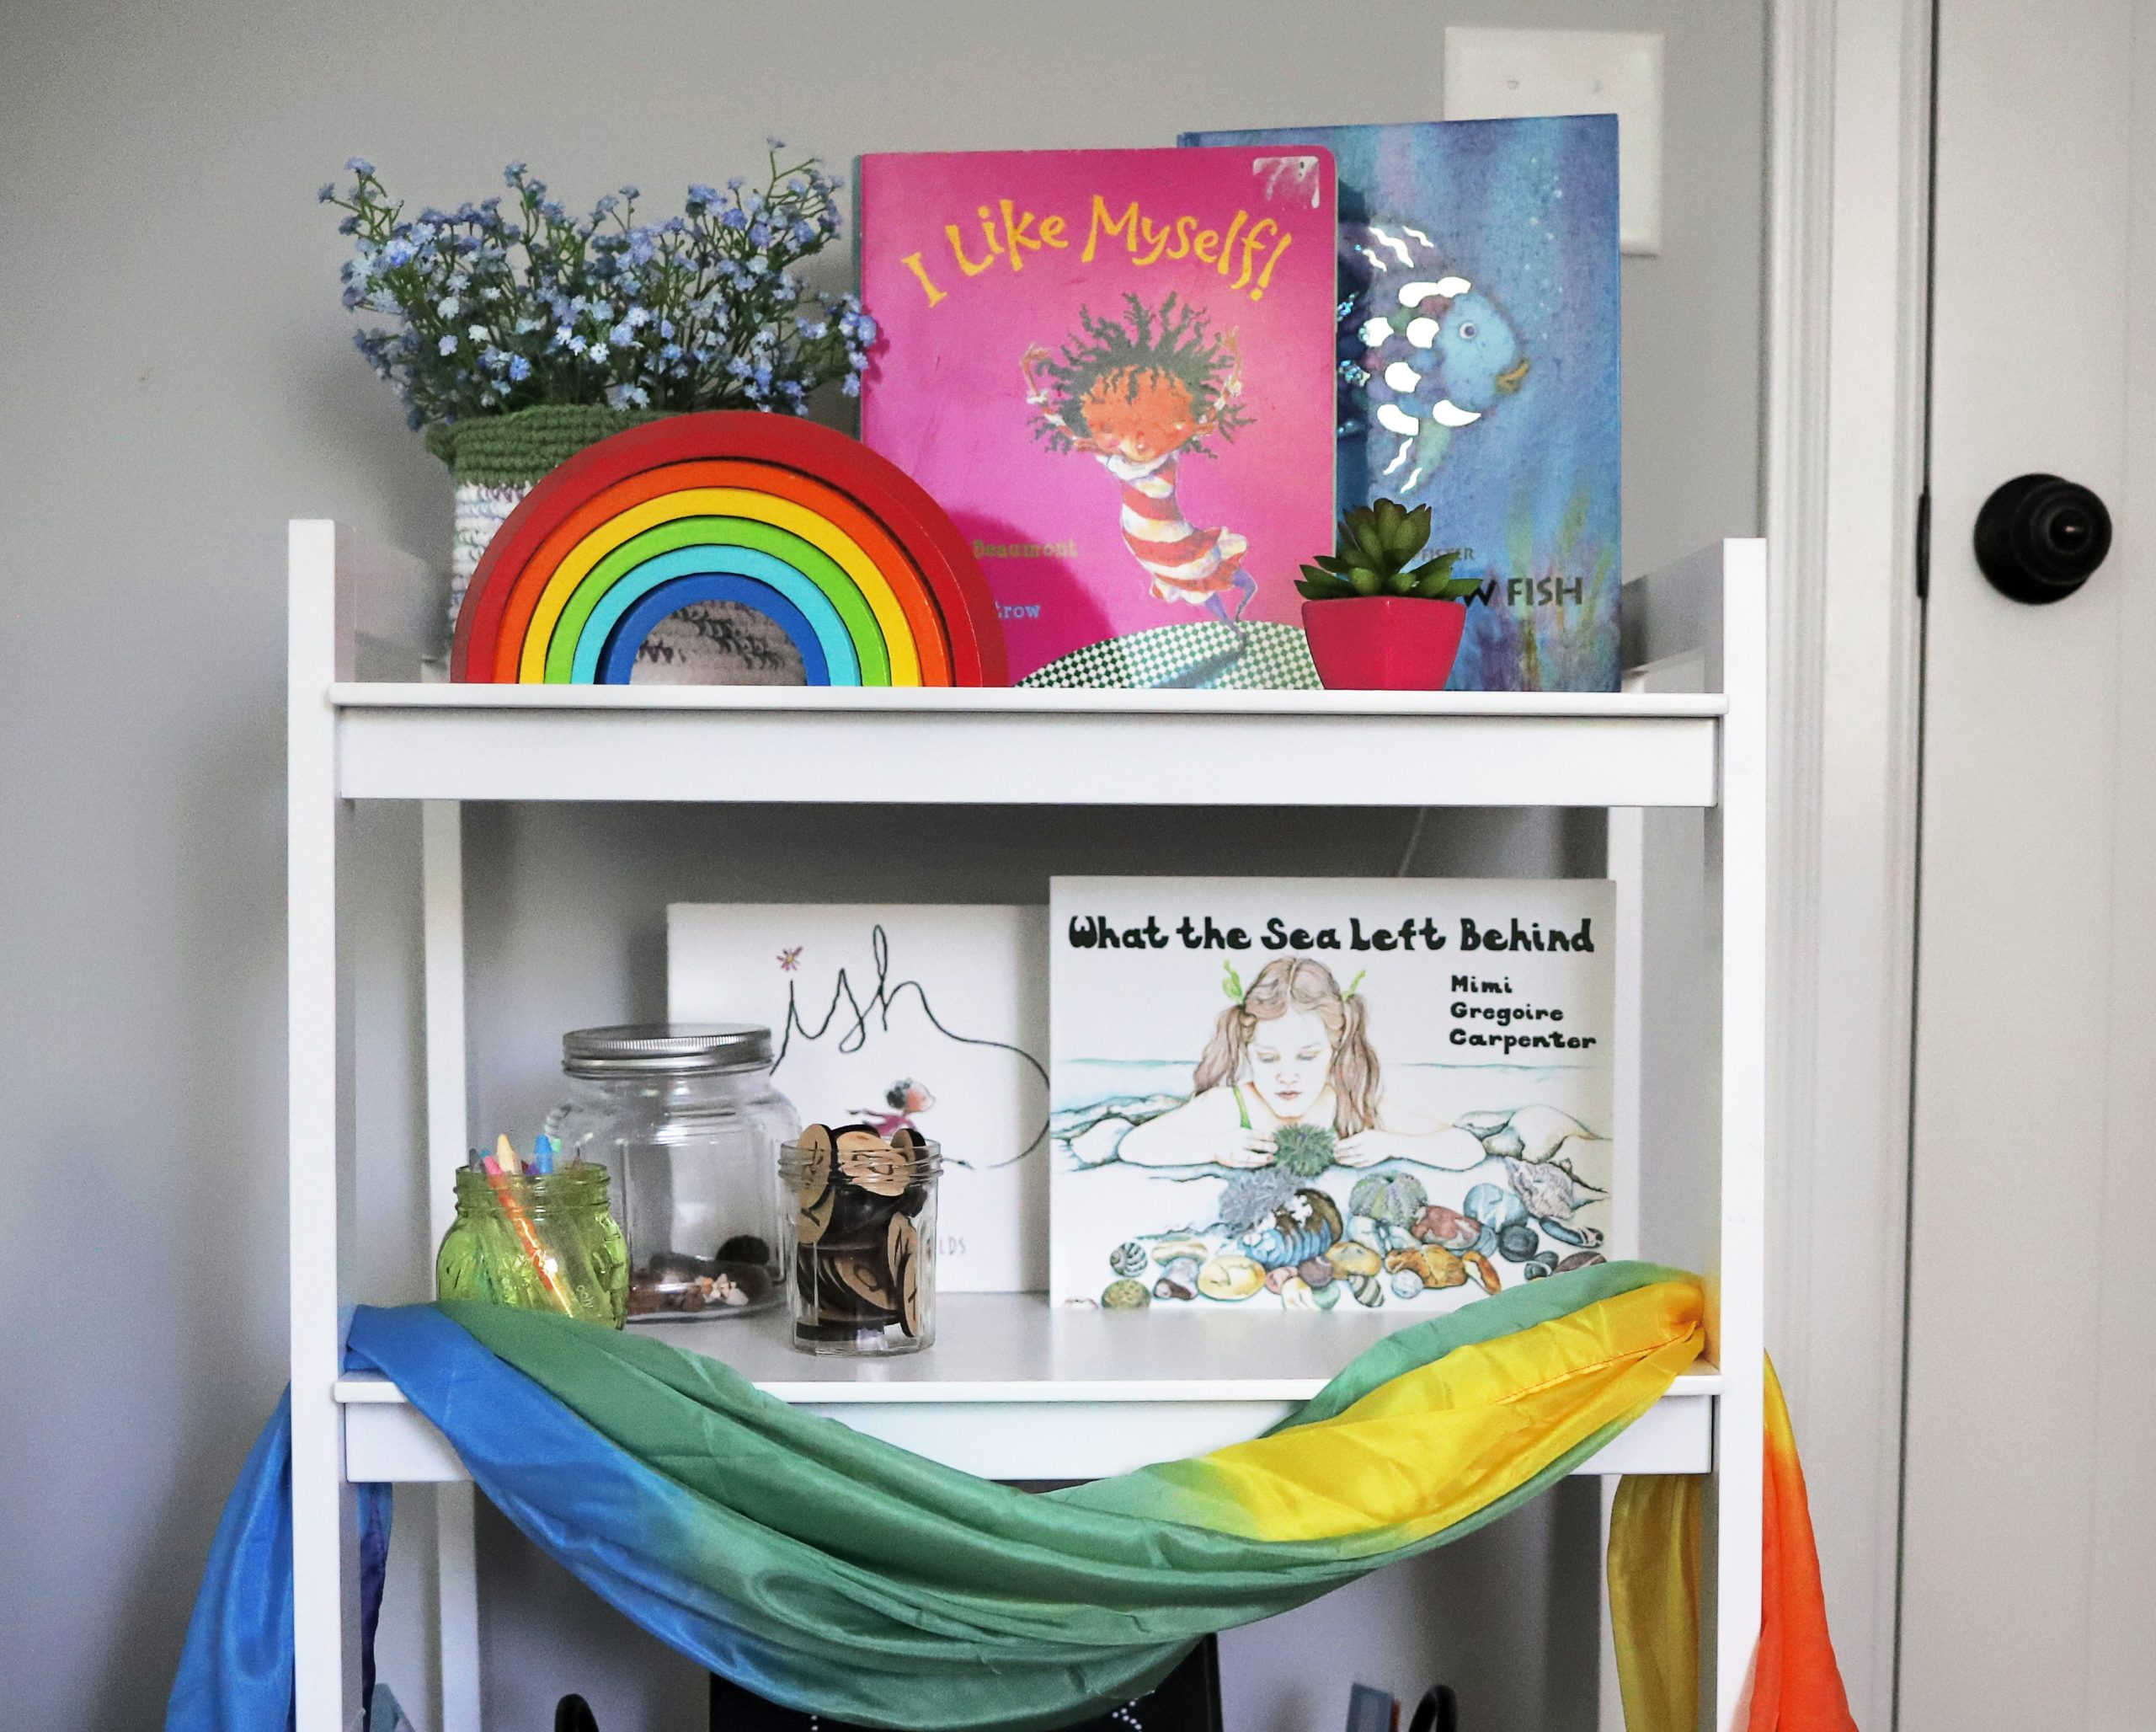 Exposing Your Child to Books that Teach Compassion, Kindness, Respect & Love